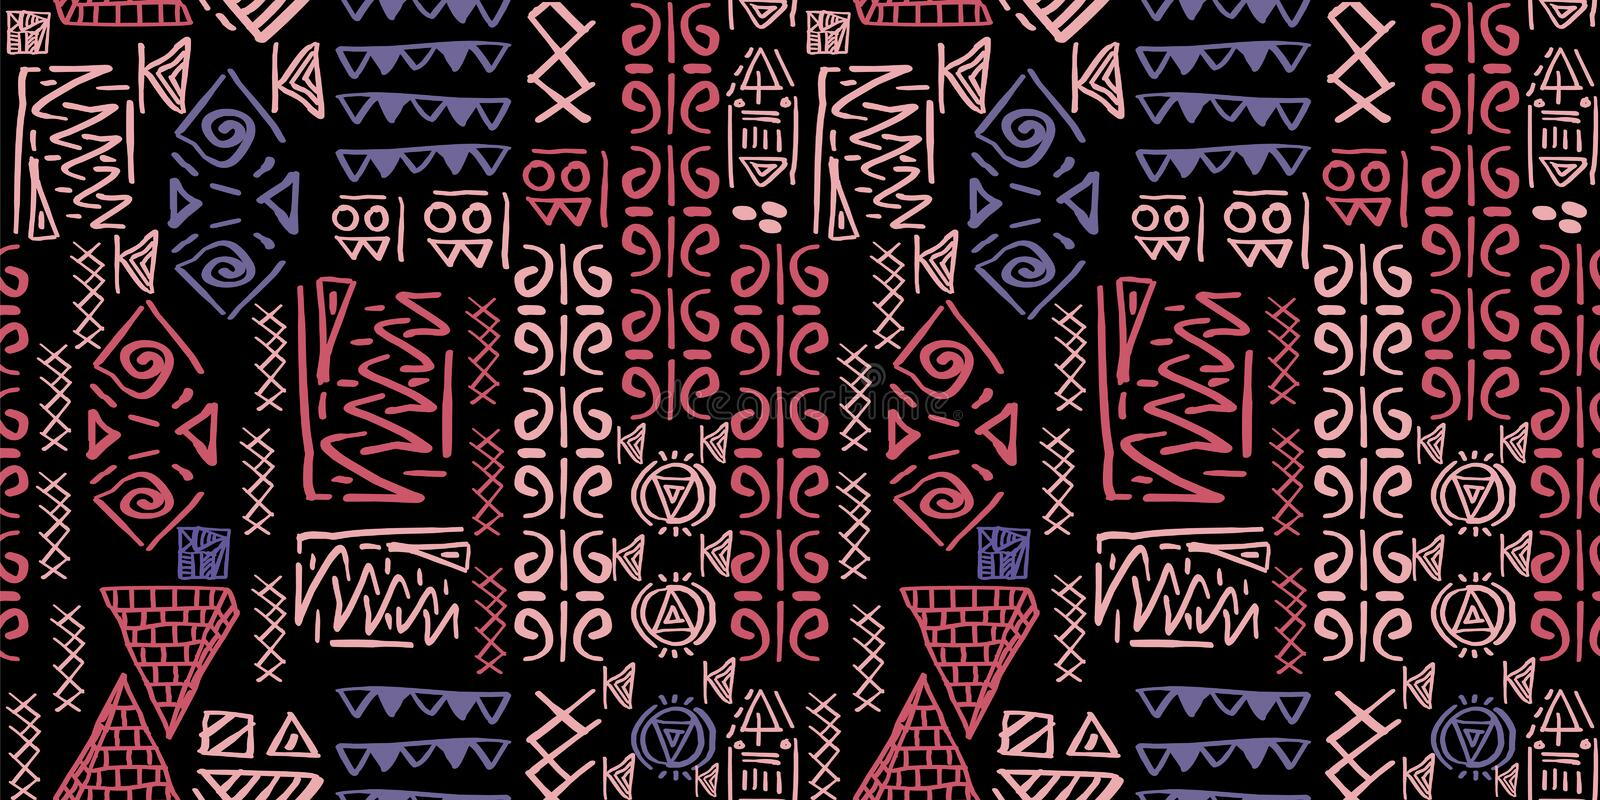 Tribal pattern vector with seamless egyptian symbol ancient style. Vintage illustration background for fashion textile print and w royalty free illustration